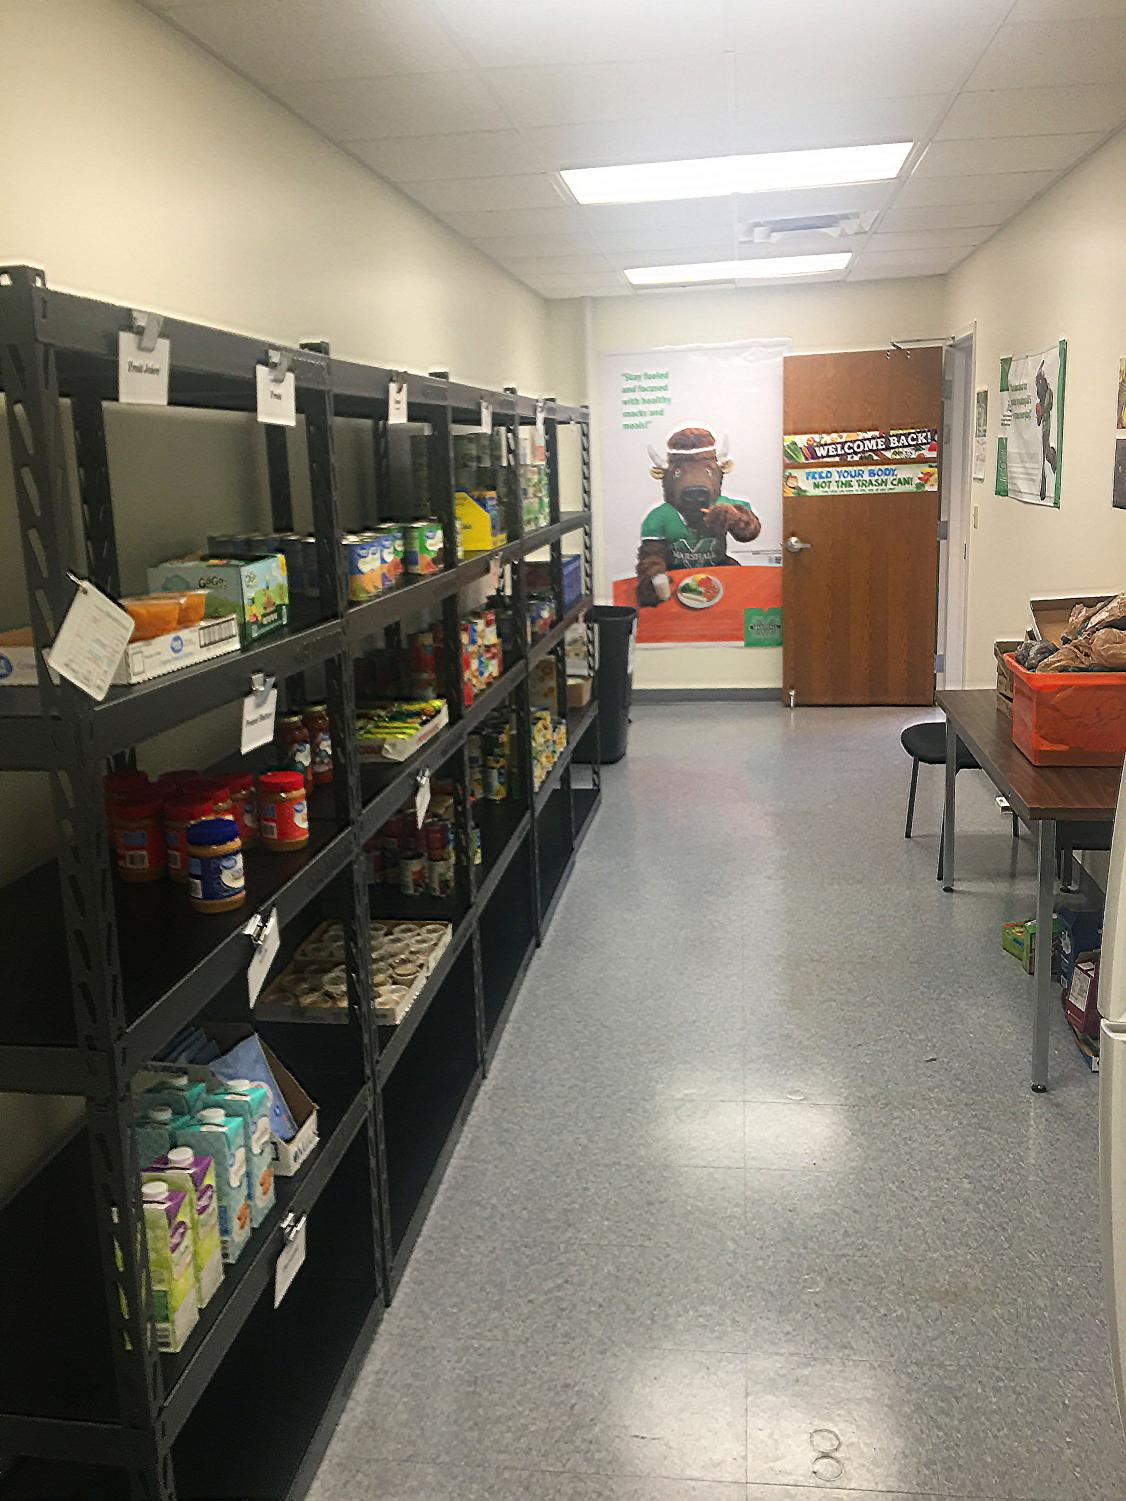 The food pantry provides community members in need with non-perishables.